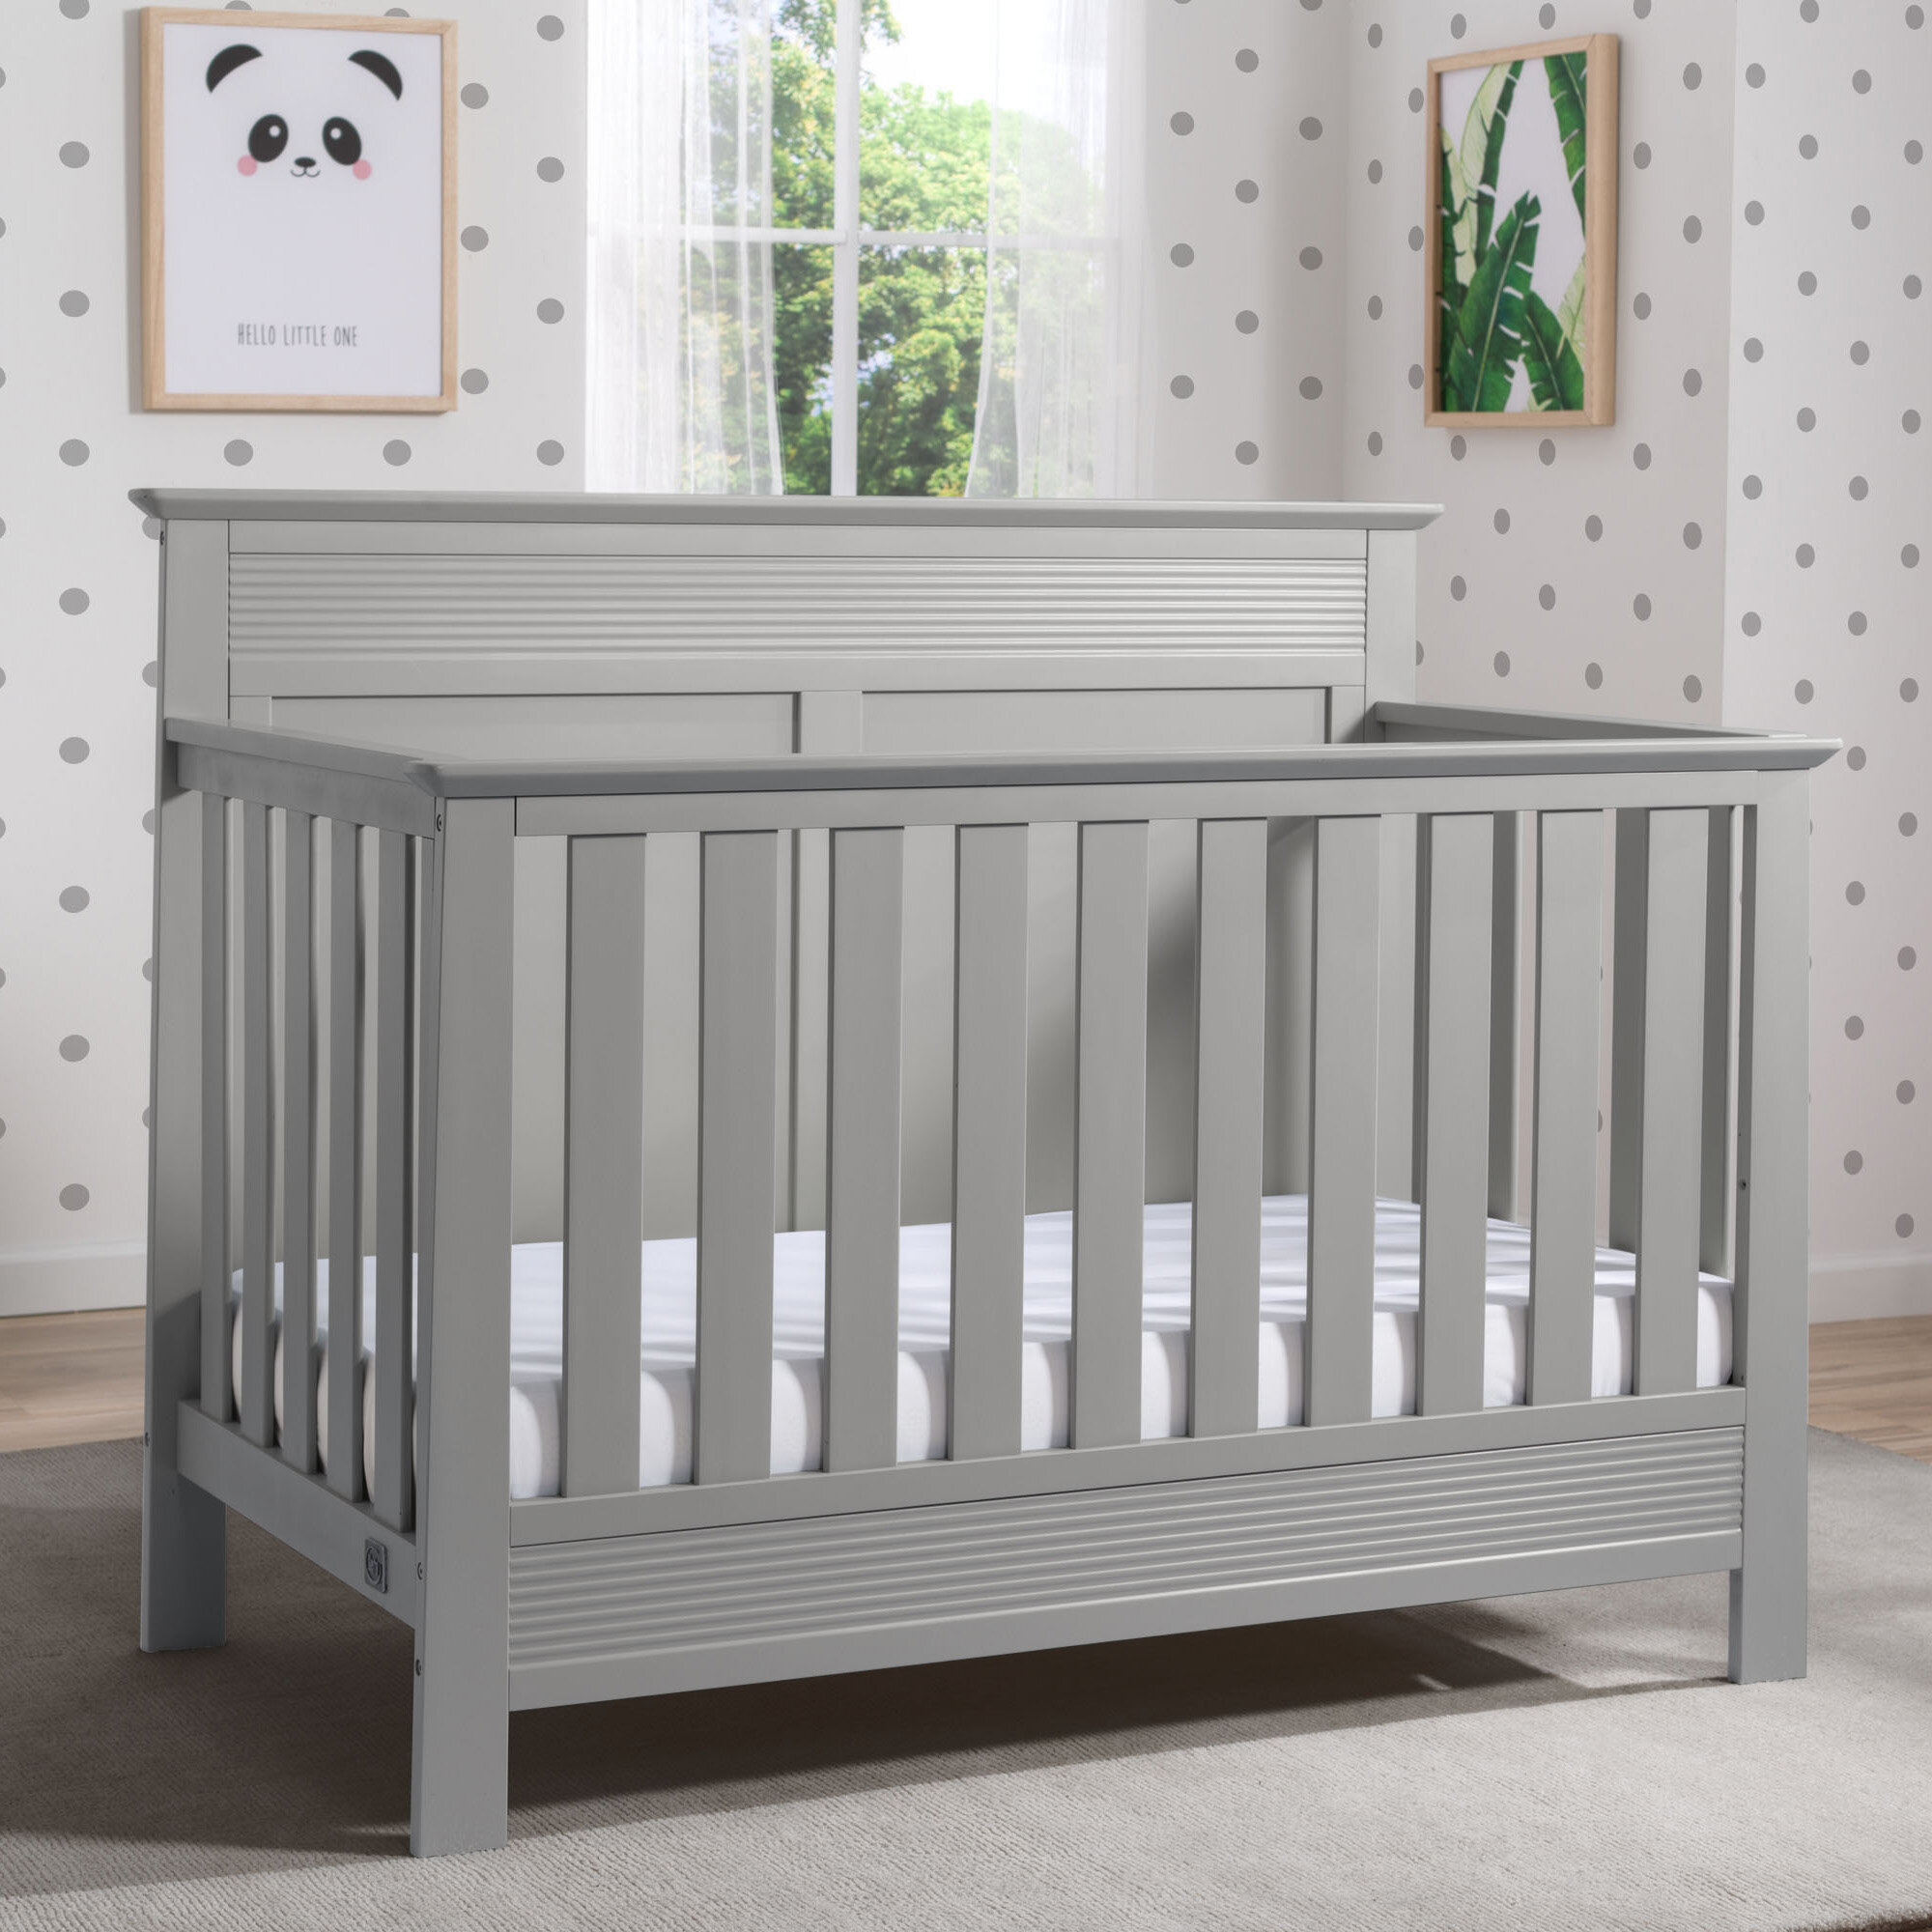 Serta Fall River 4 In 1 Convertible Crib U0026 Reviews | Wayfair